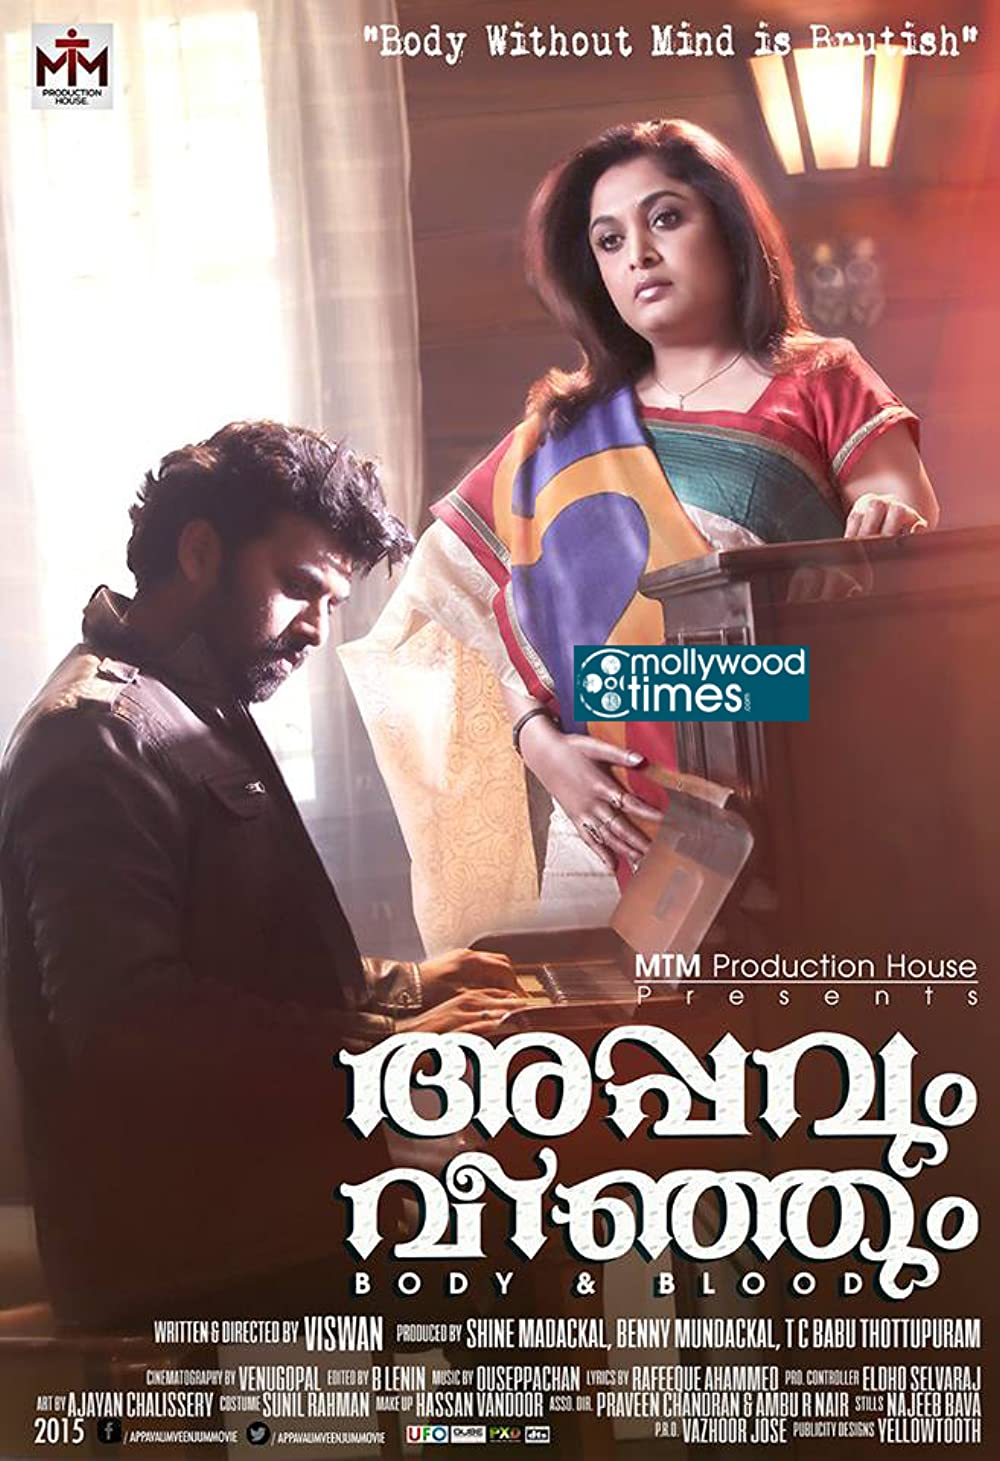 Jism Aur Khoon (Appavum Veenjum) 2021 Hindi Dubbed 310MB HDRip Download